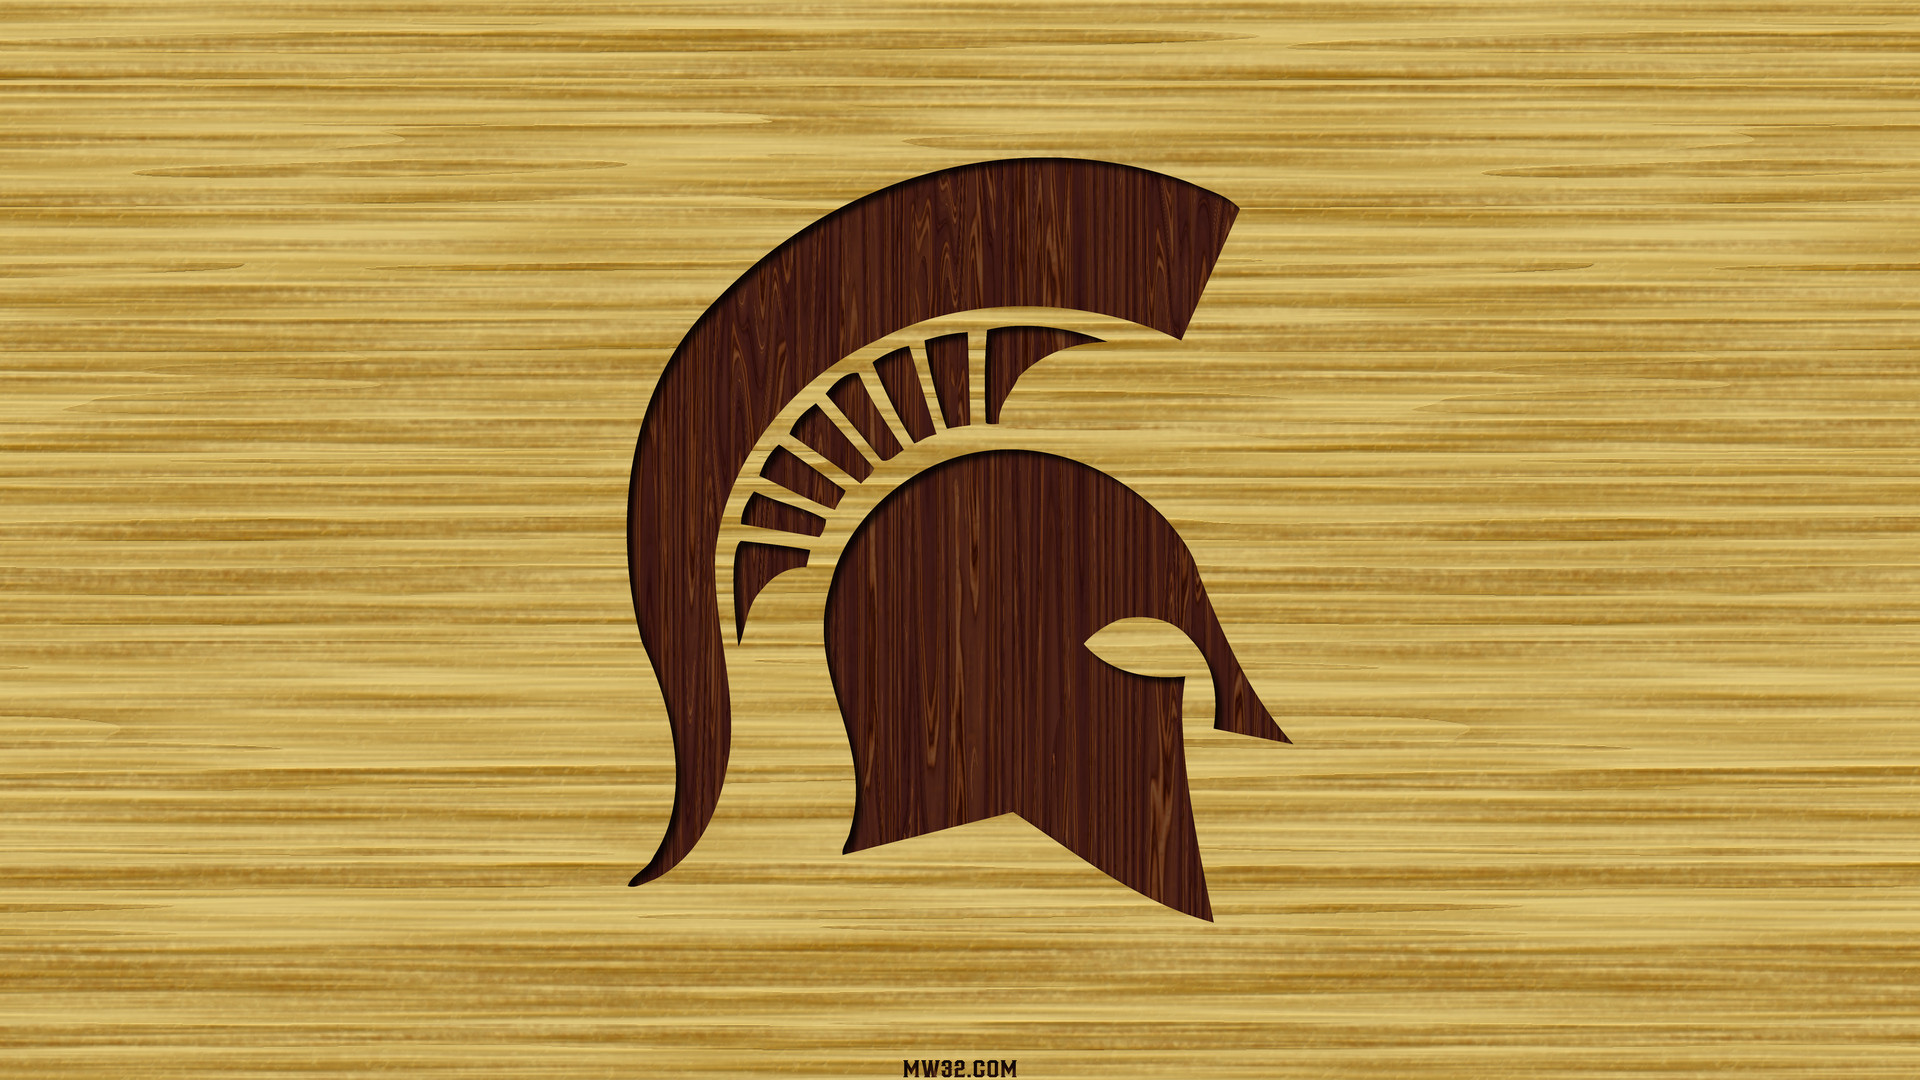 1920x1080 Michigan State Basketball Court Wallpaper Images & Pictures - Becuo